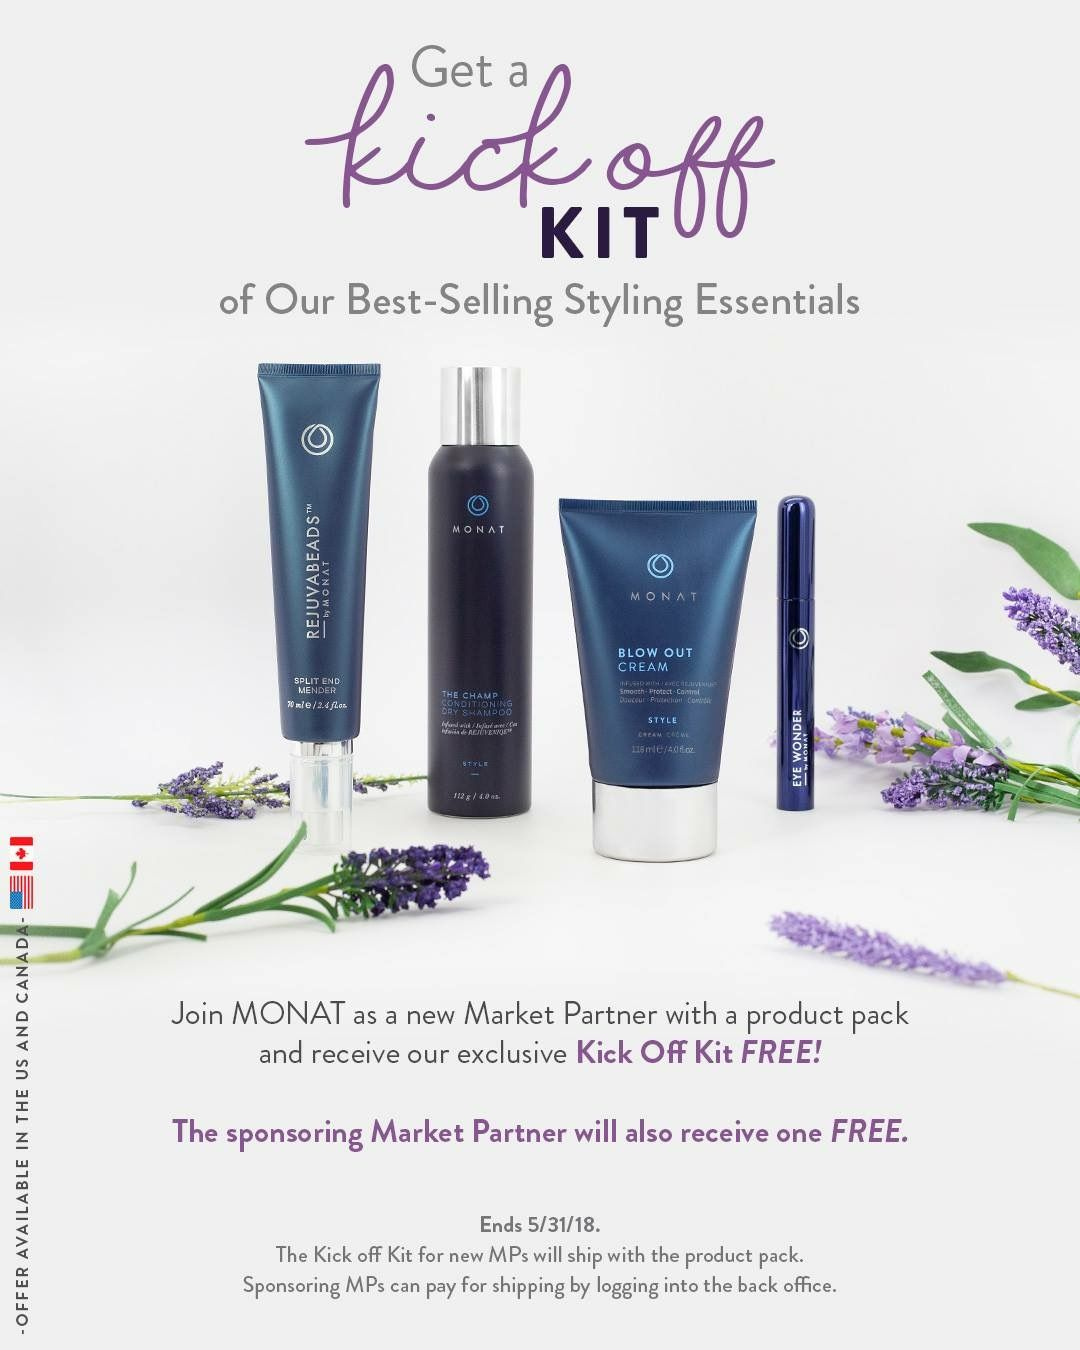 Free for the Monat of May 2018 when you sign up to start